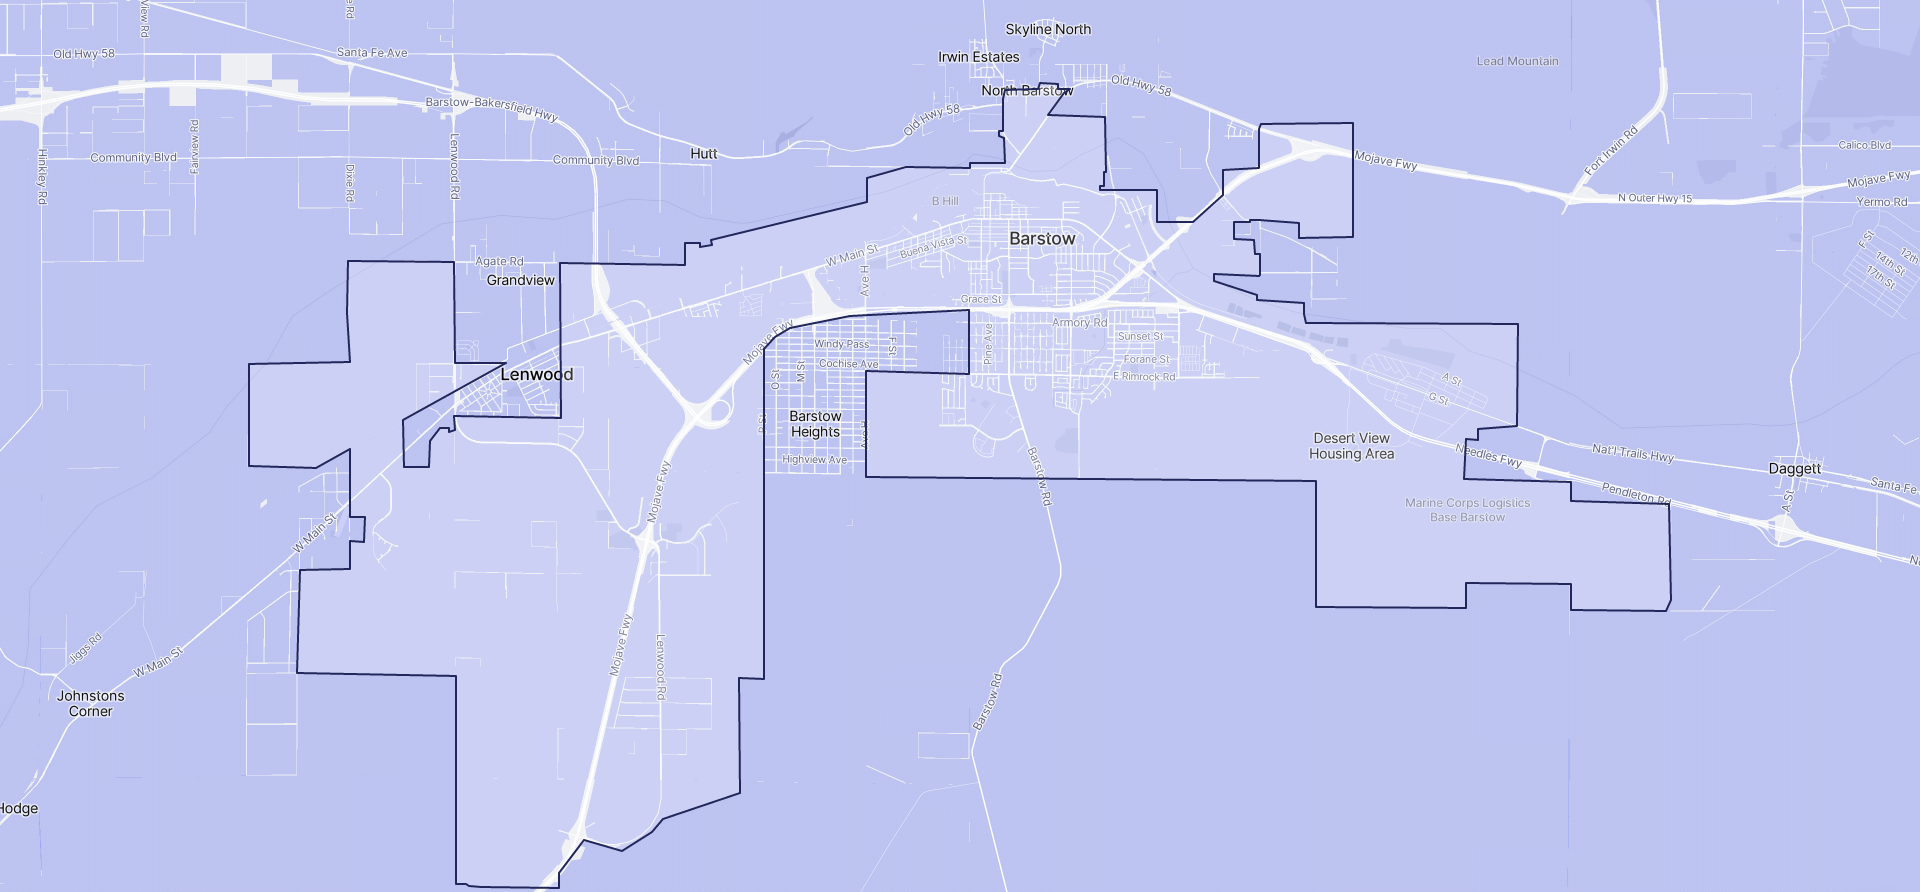 Image of Barstow boundaries on a map.